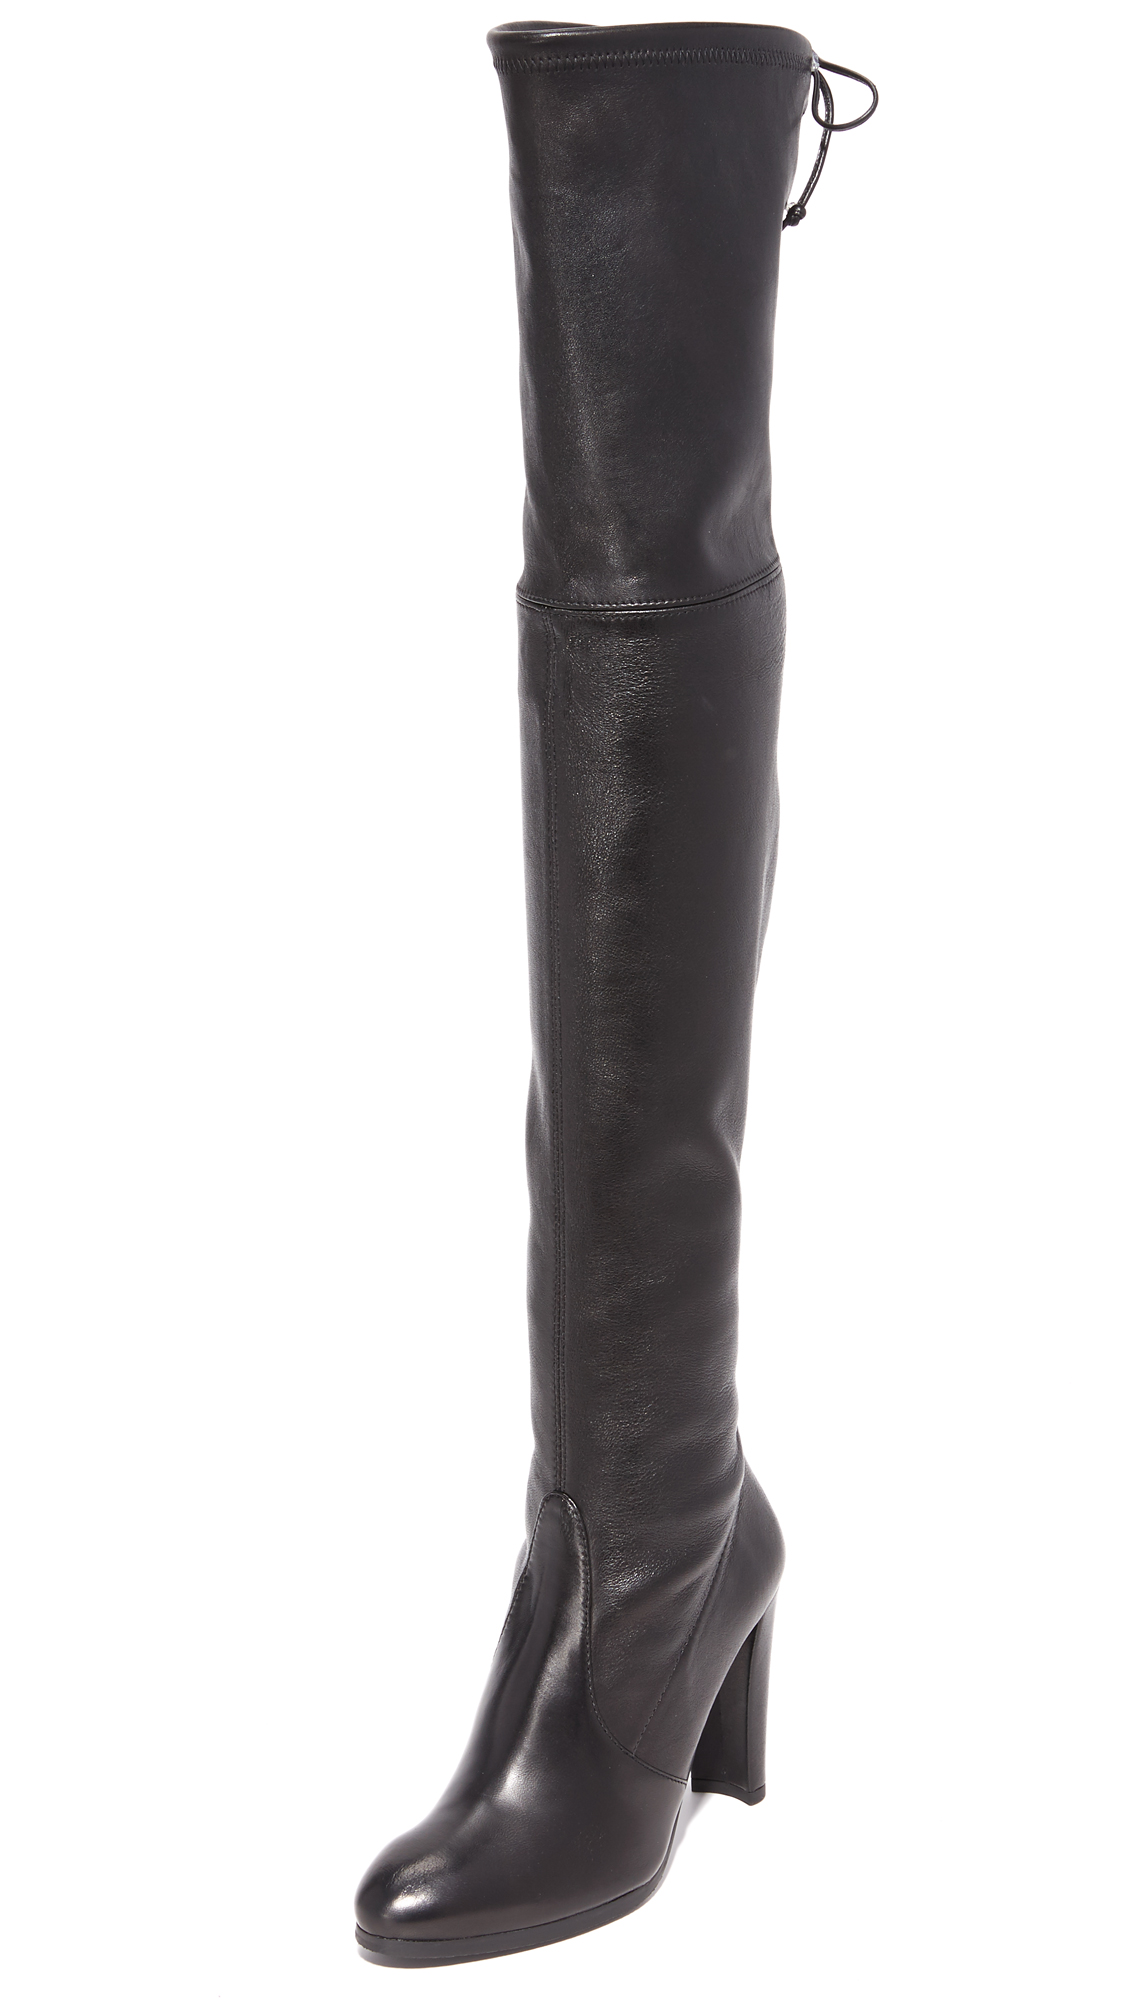 Stretch leather lends a close, comfortable fit to slim Stuart Weitzman over the knee boots. A suede drawstring cinches the top line. Covered heel and rubber sole. Leather: Cowhide. Made in Italy. This item cannot be